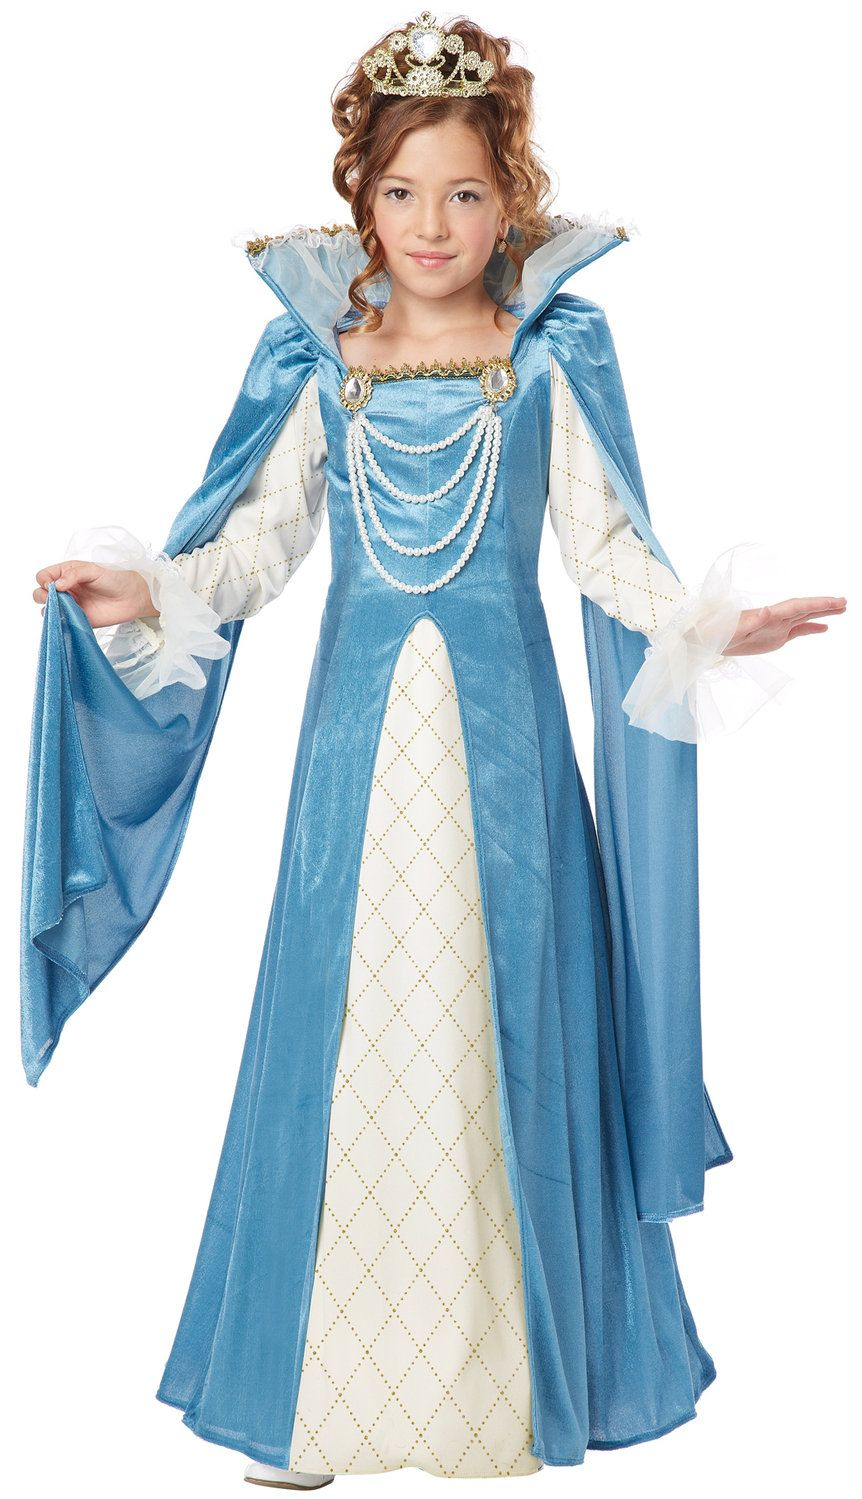 homemade halloween costumes for girls age 10 12 home queen costumes renaissance queen kids costume